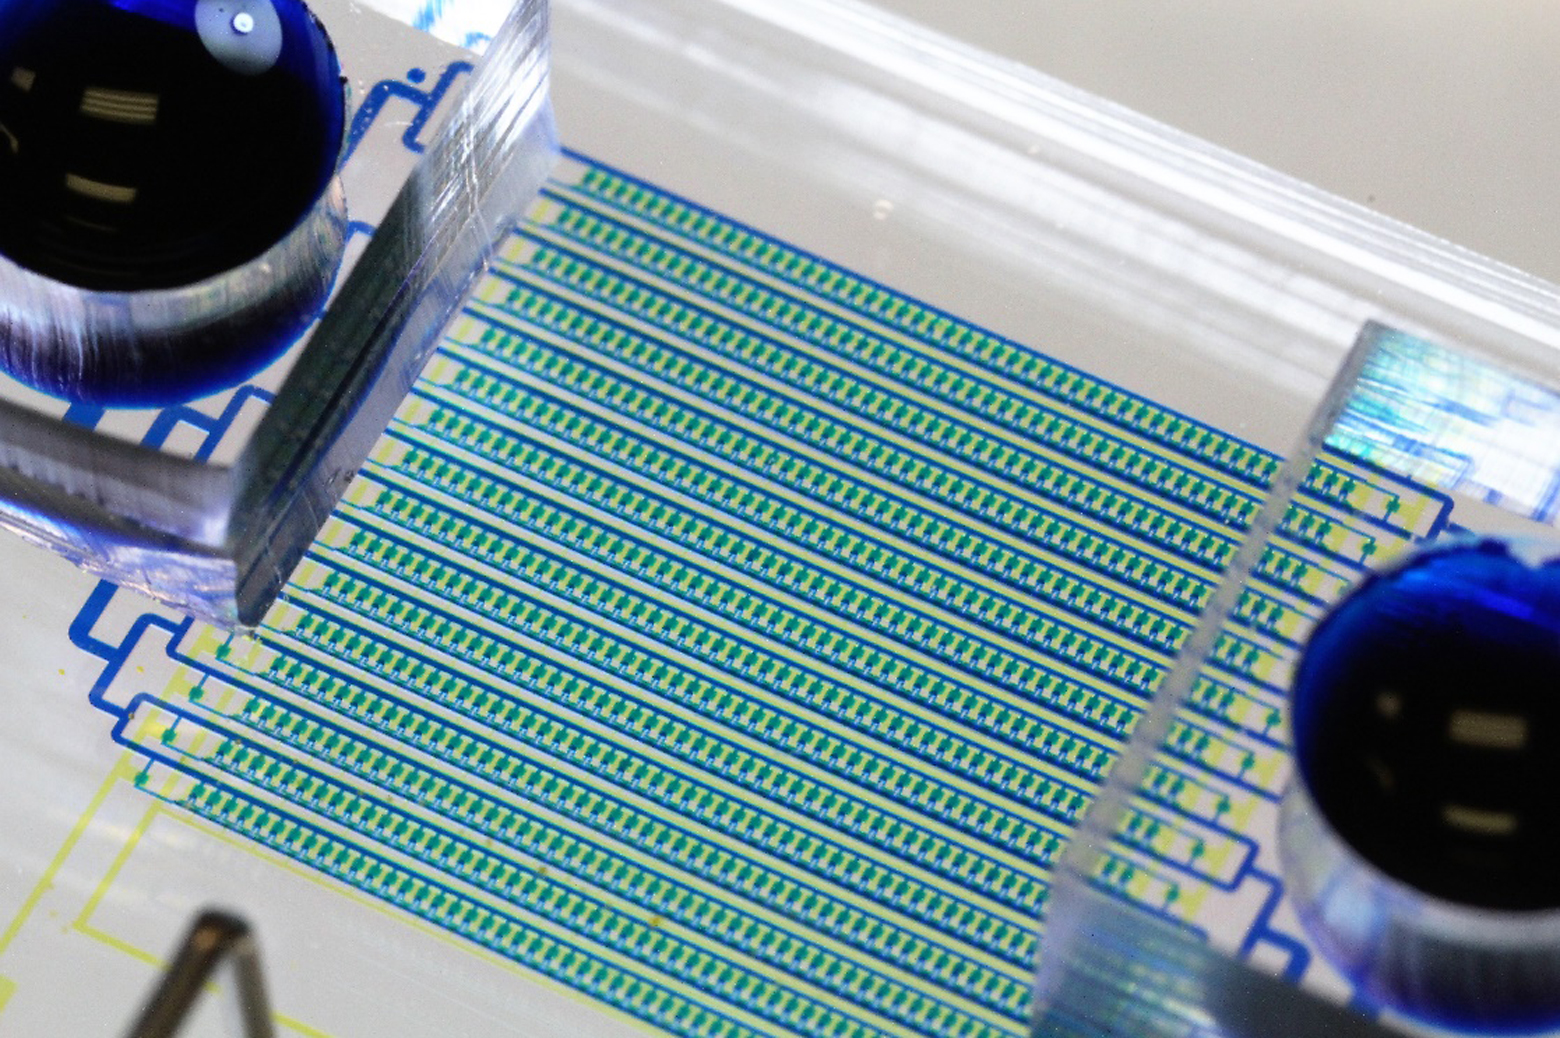 A new microfluidic chip designed to catch circulating tumor cells